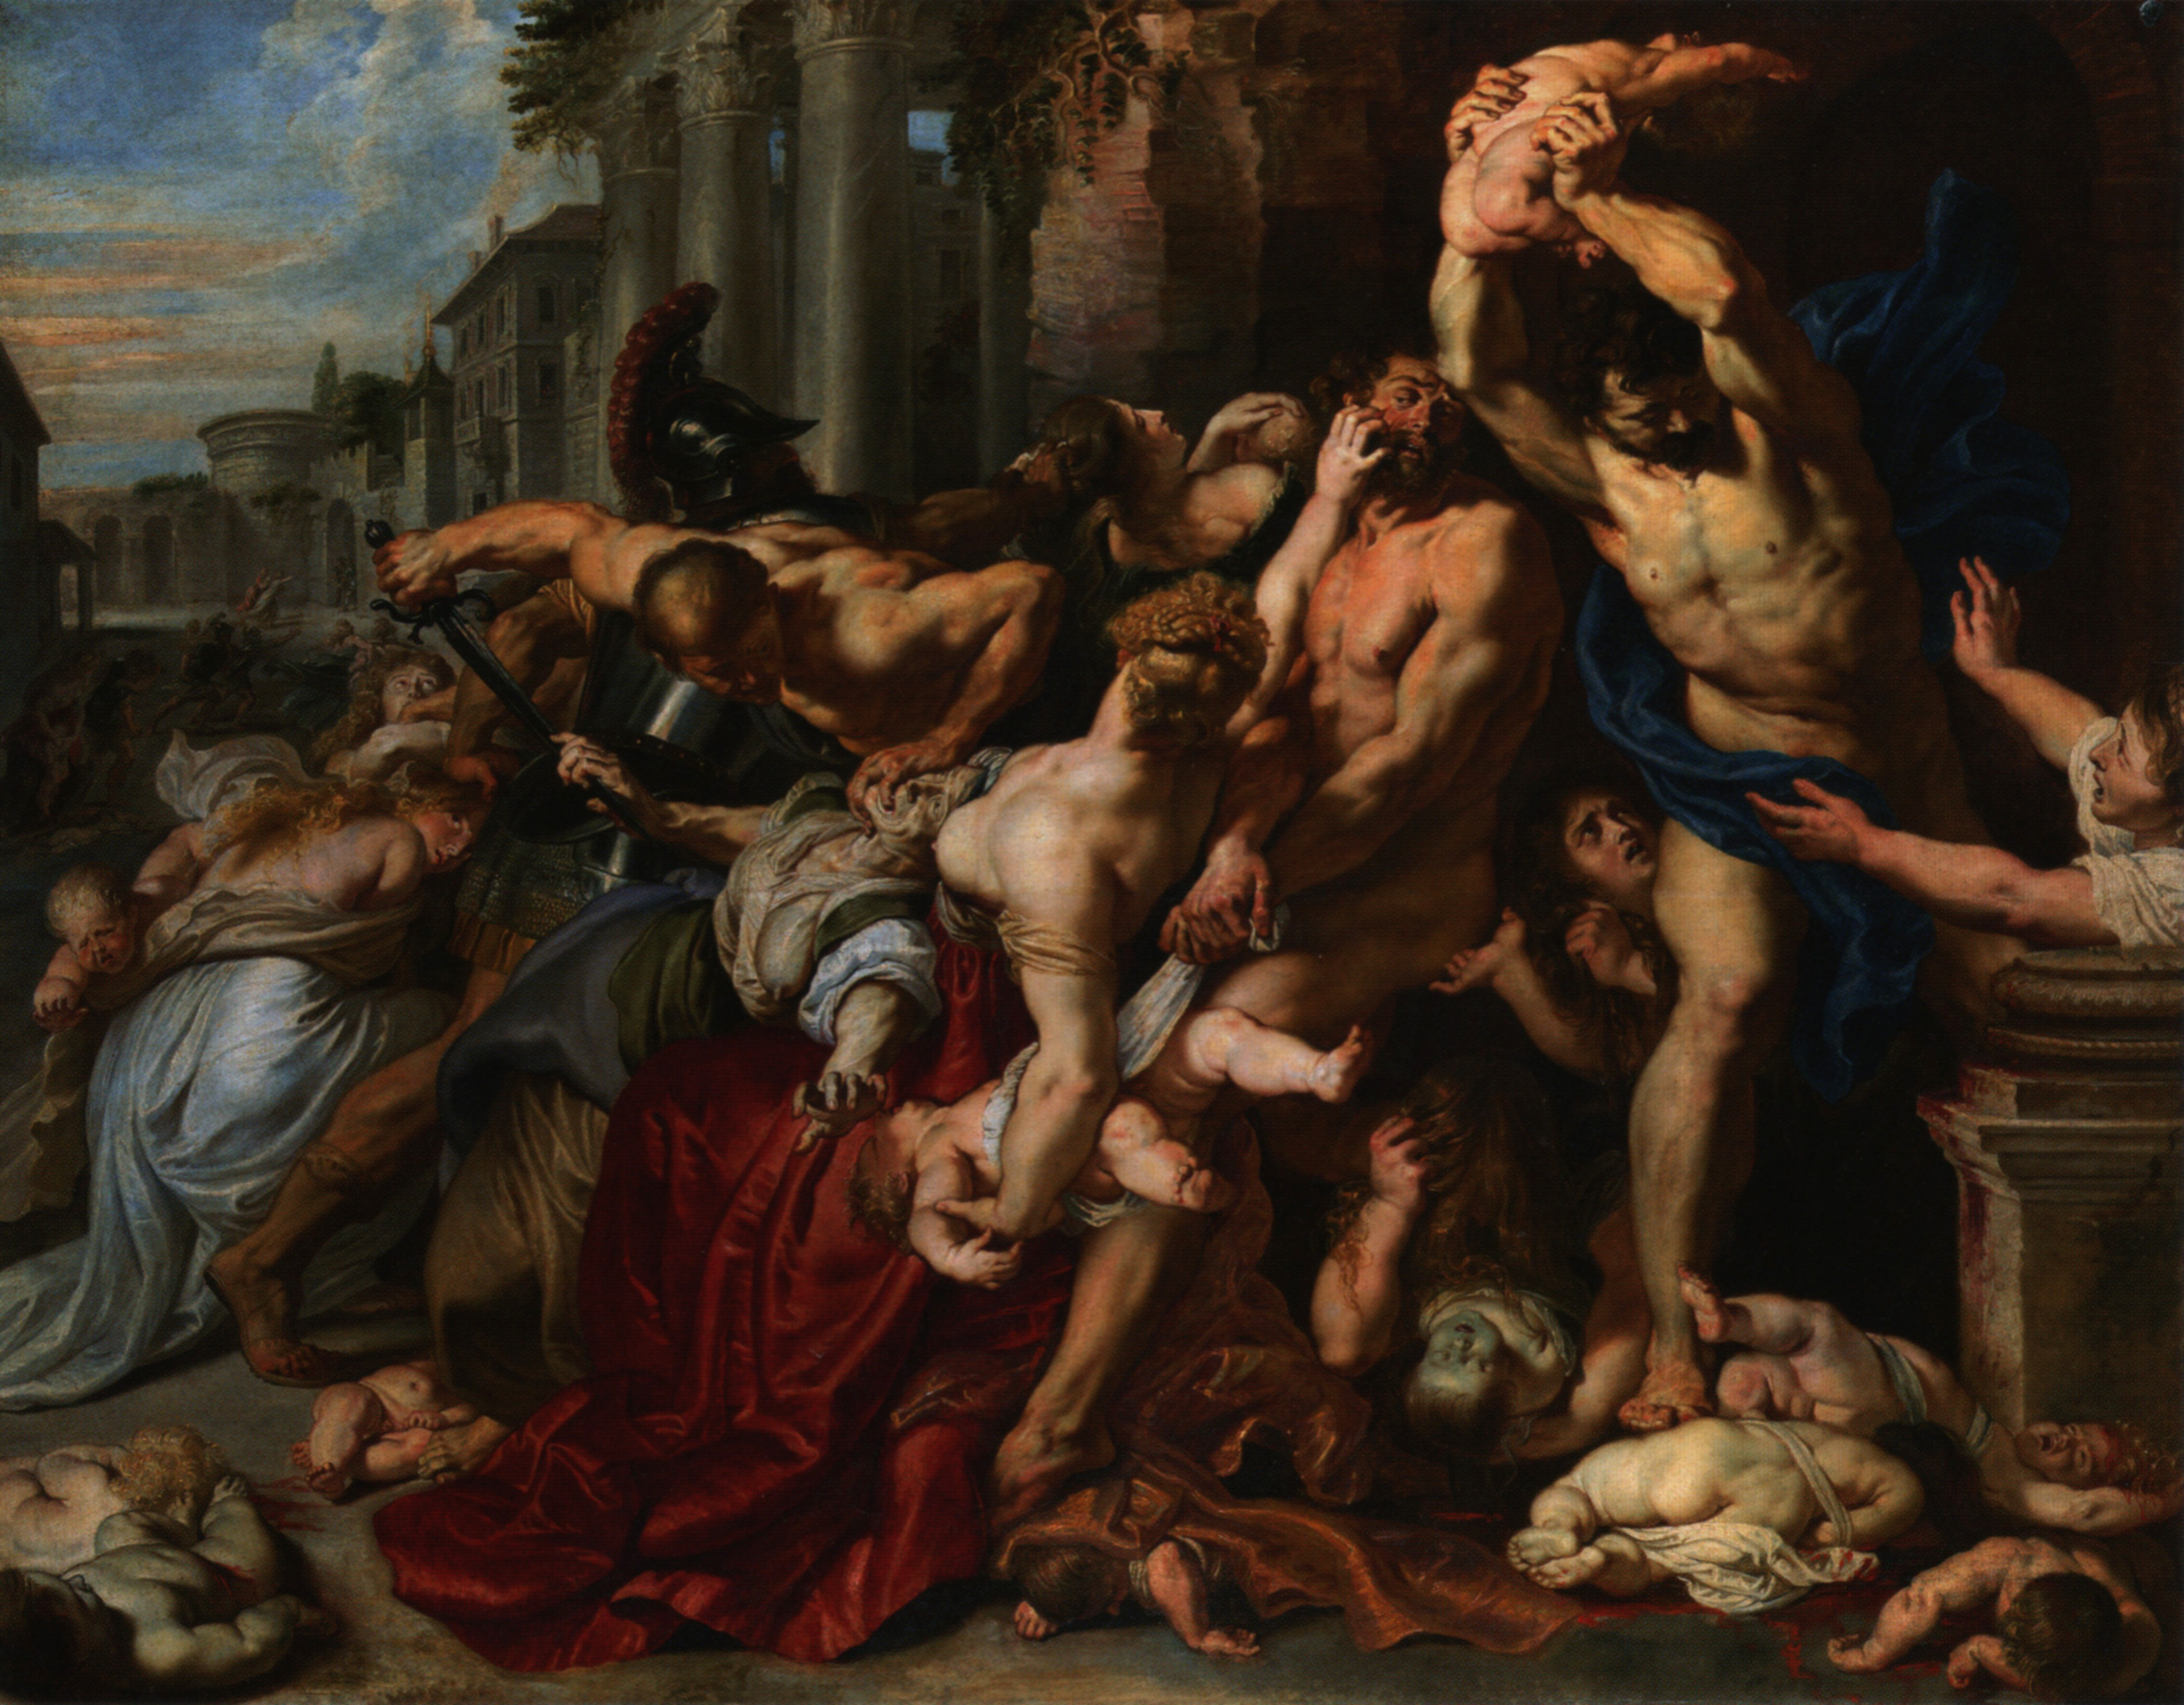 Peter_Paul_Rubens_Massacre_of_the_Innocents